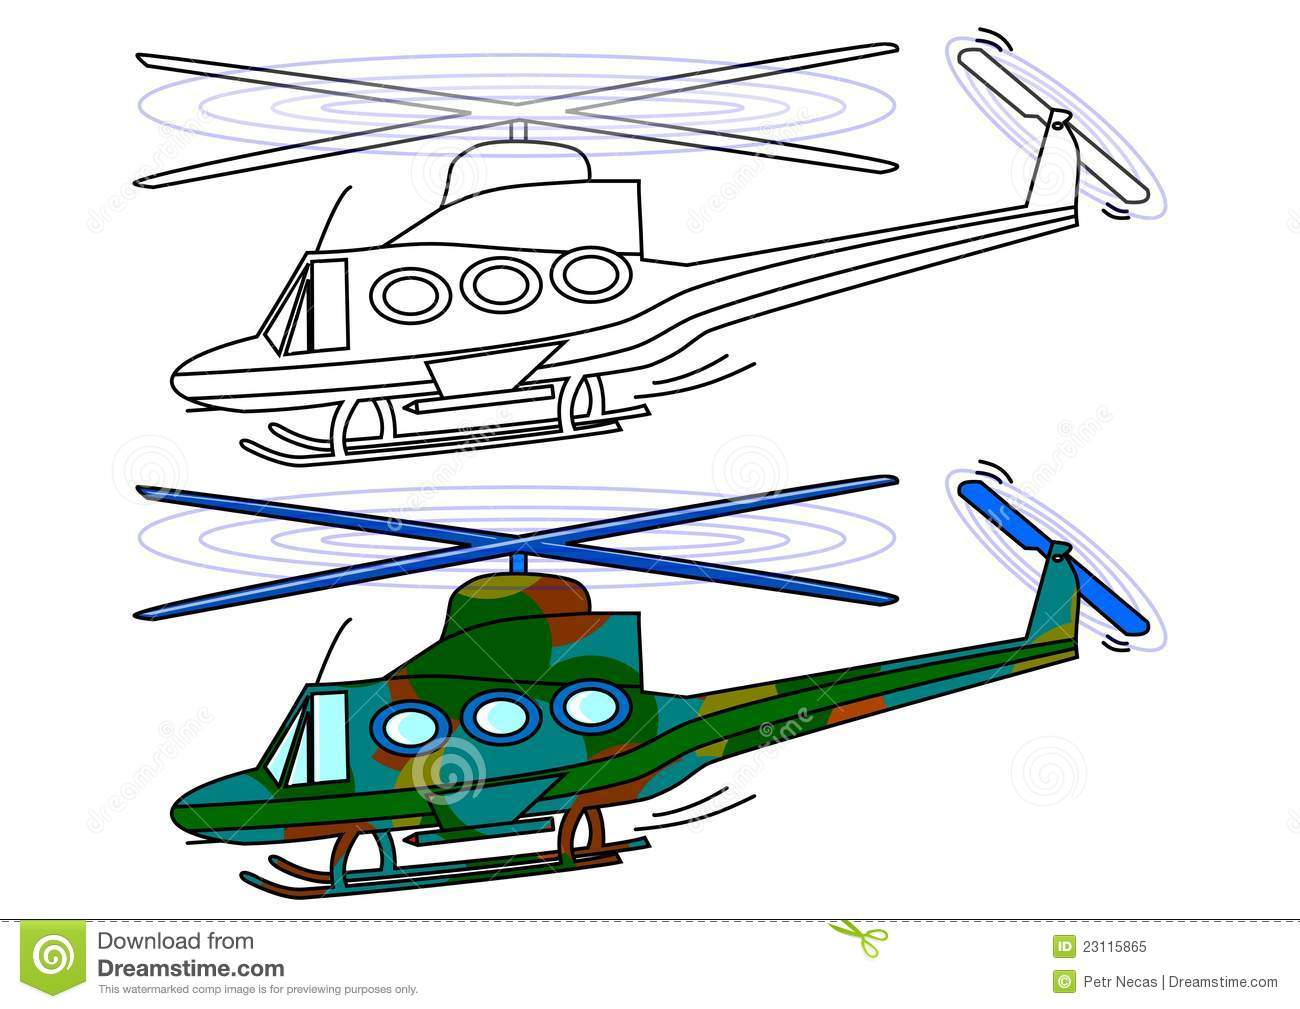 masked military helicopter coloring book royalty free stock